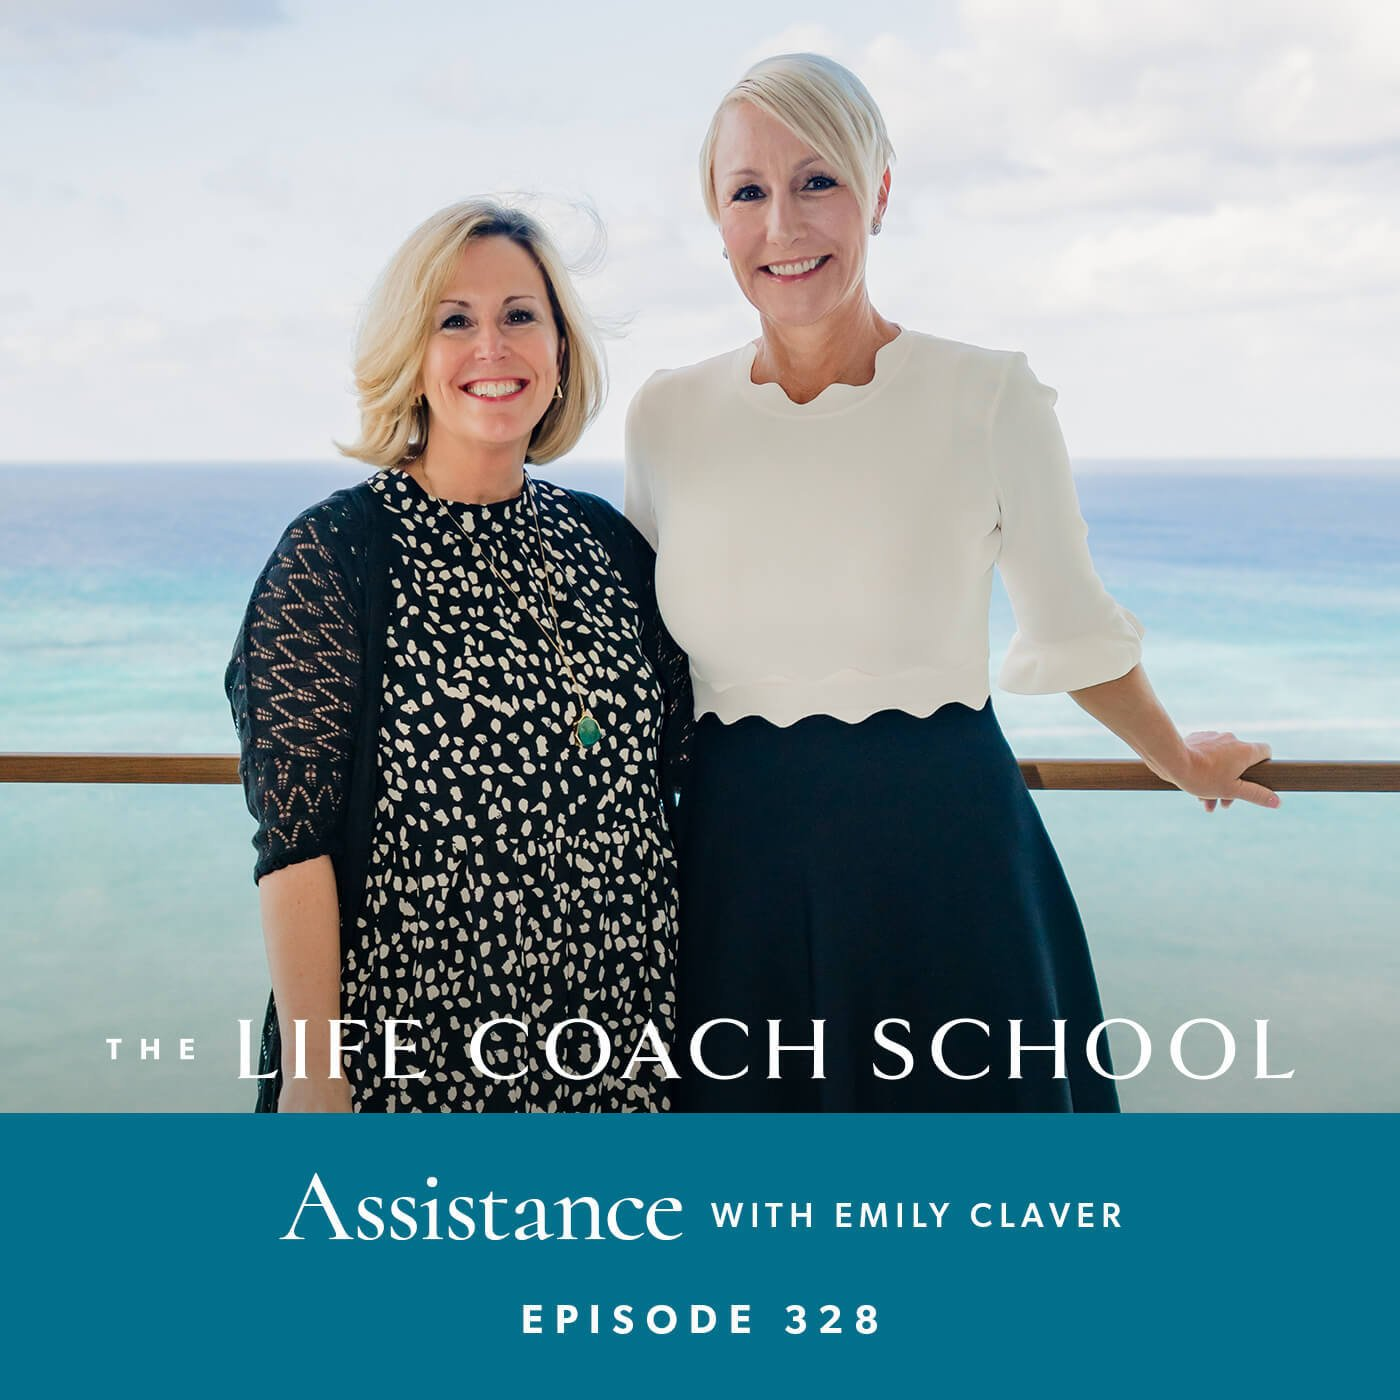 The Life Coach School Podcast with Brooke Castillo | Episode 328 | Assistance with Emily Claver